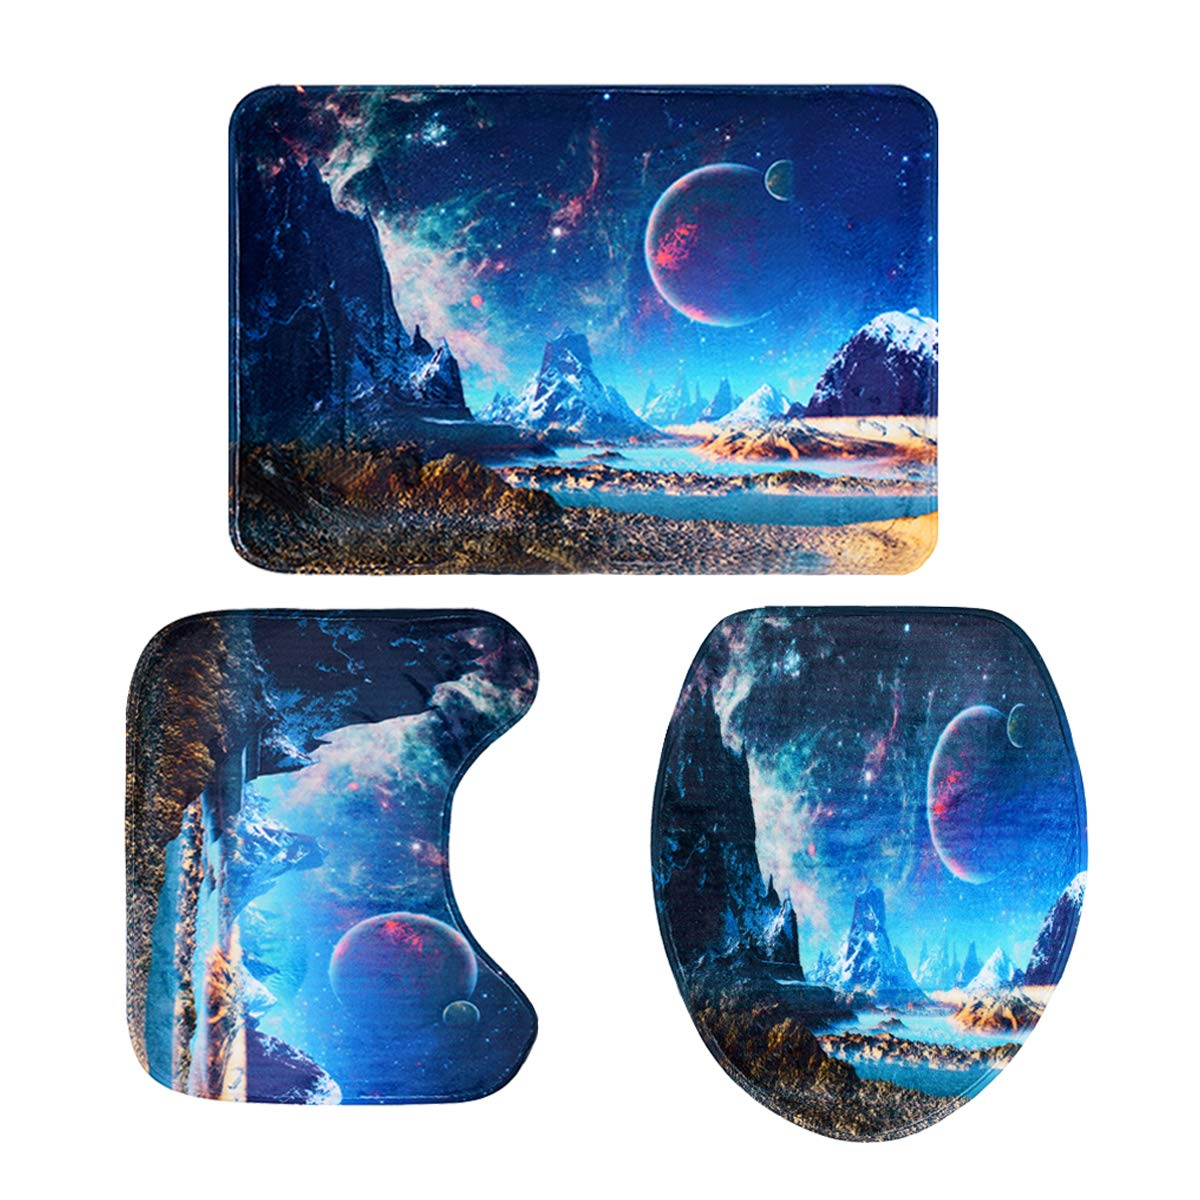 YoungRich 3 Pieces Bathroom Rug Mat Non Slip Bath Mat Rug Set (Bathroom Carpet + Pedestal Rug + Toilet Seat Cover) Flannel Starry Sky Painting for Living Room Bedroom Toilet Swimming Pool Washable